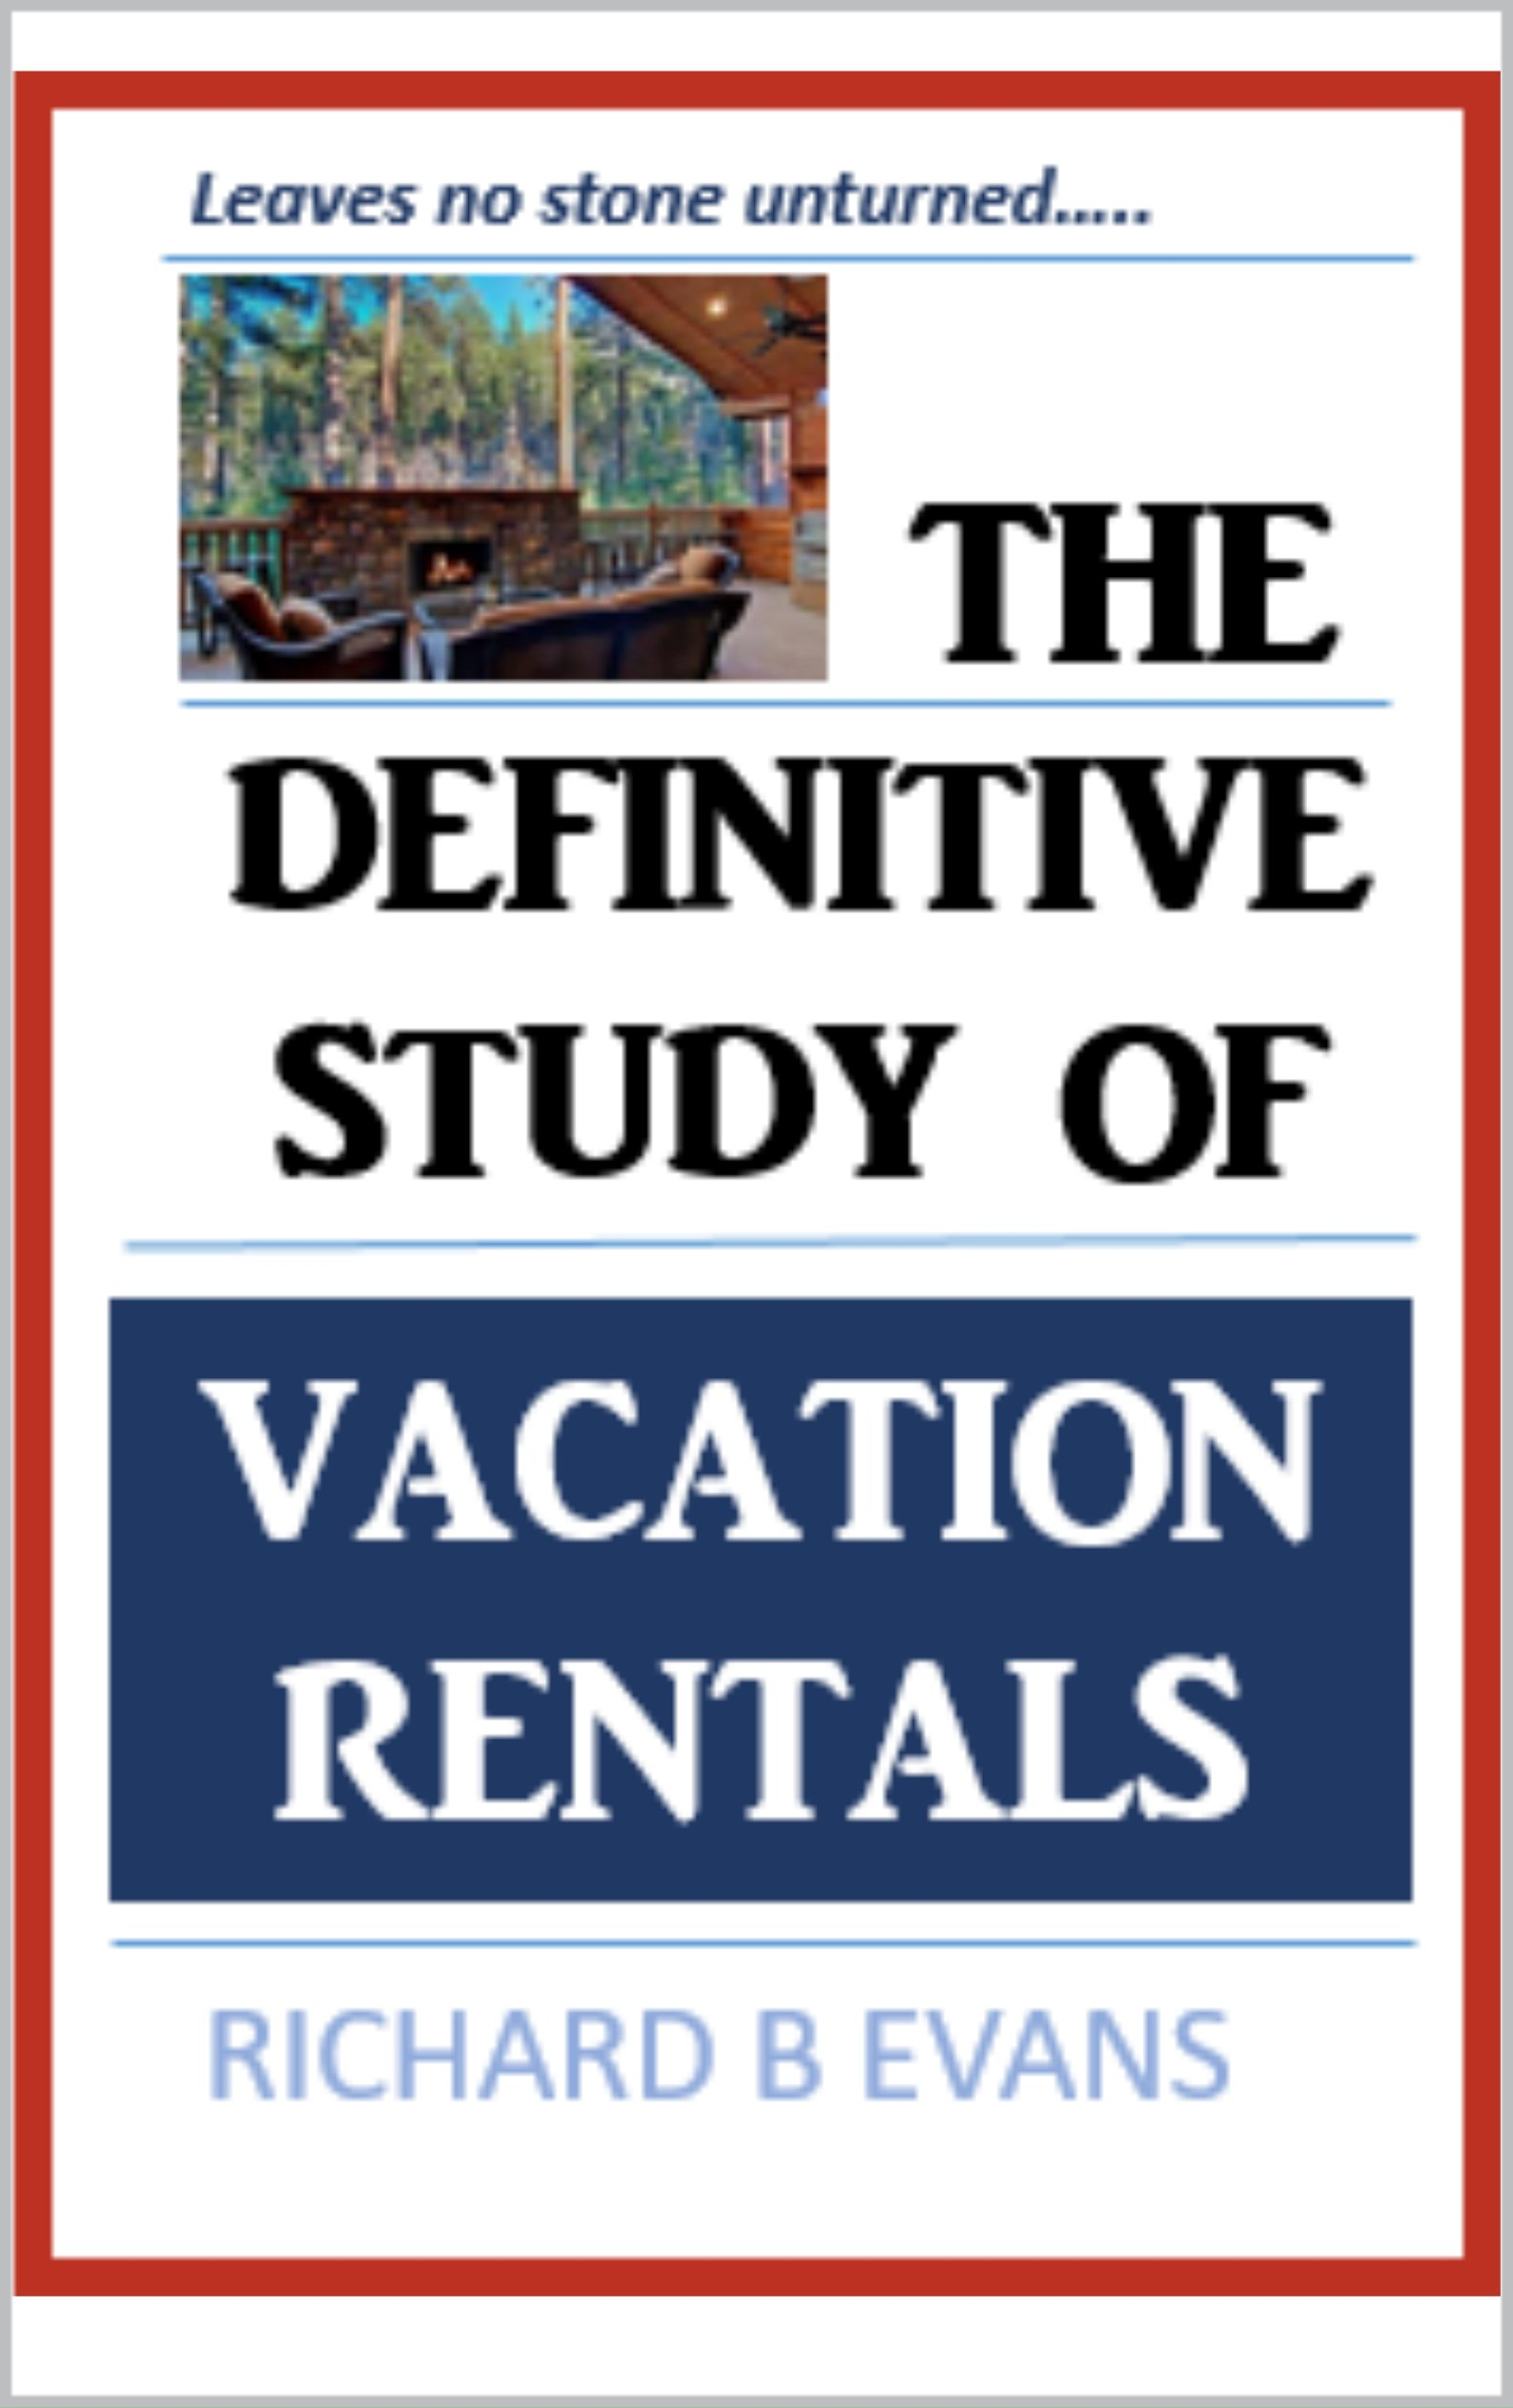 The Definitive Study of Vacation Rentals